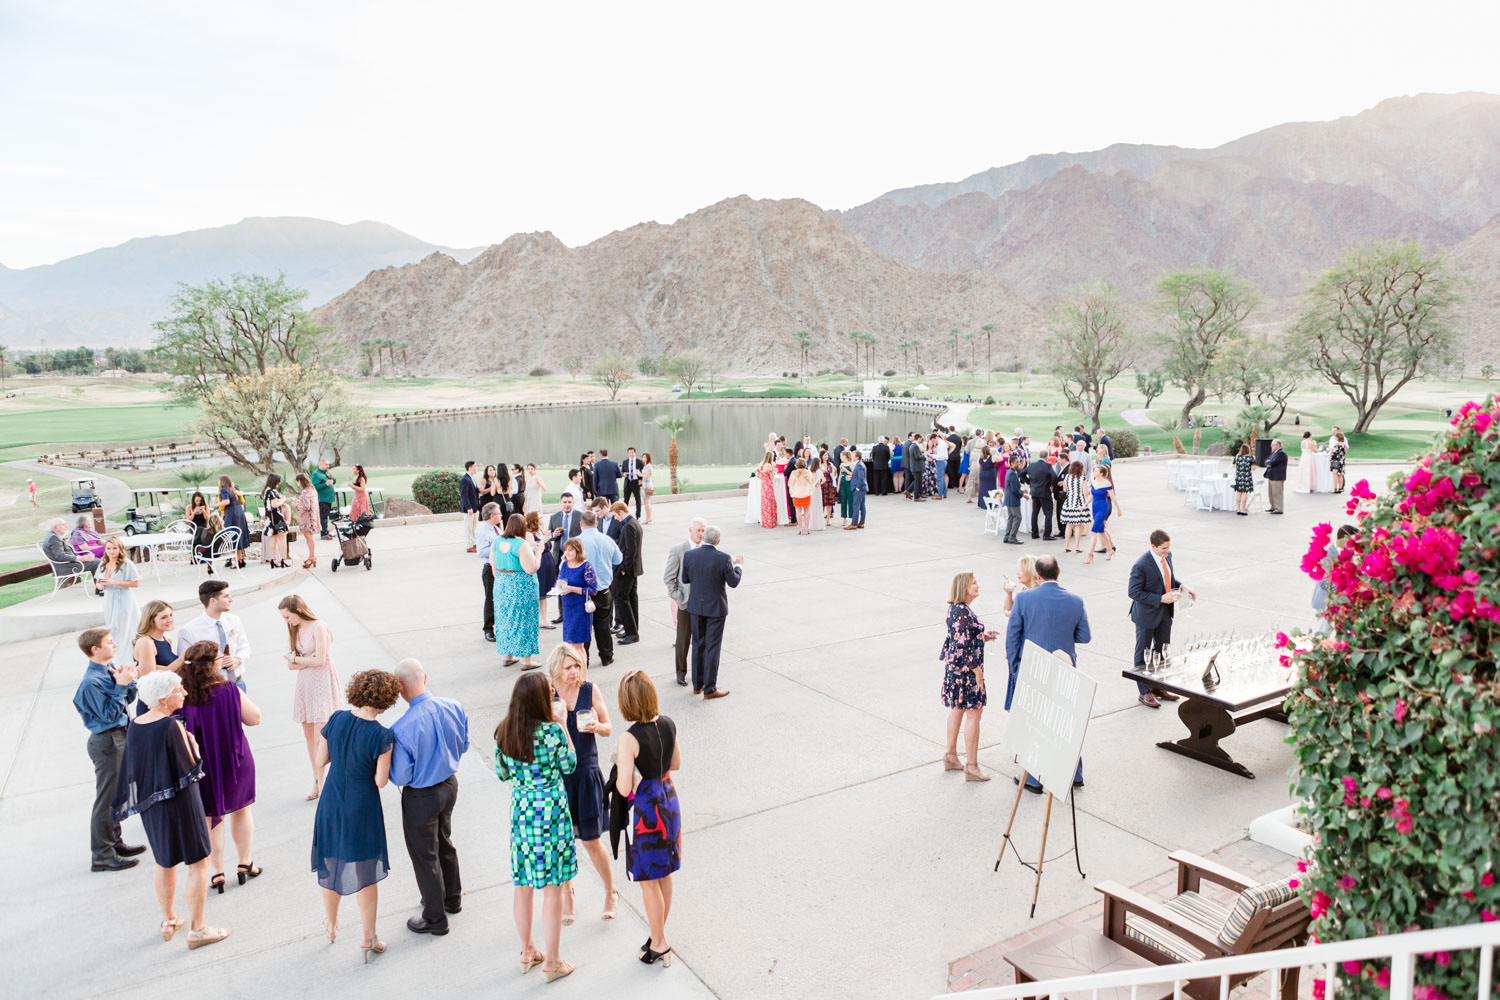 Cocktail hour by the clubhouse with mountains in the background for a La Quinta Resort wedding, Cavin Elizabeth Photography